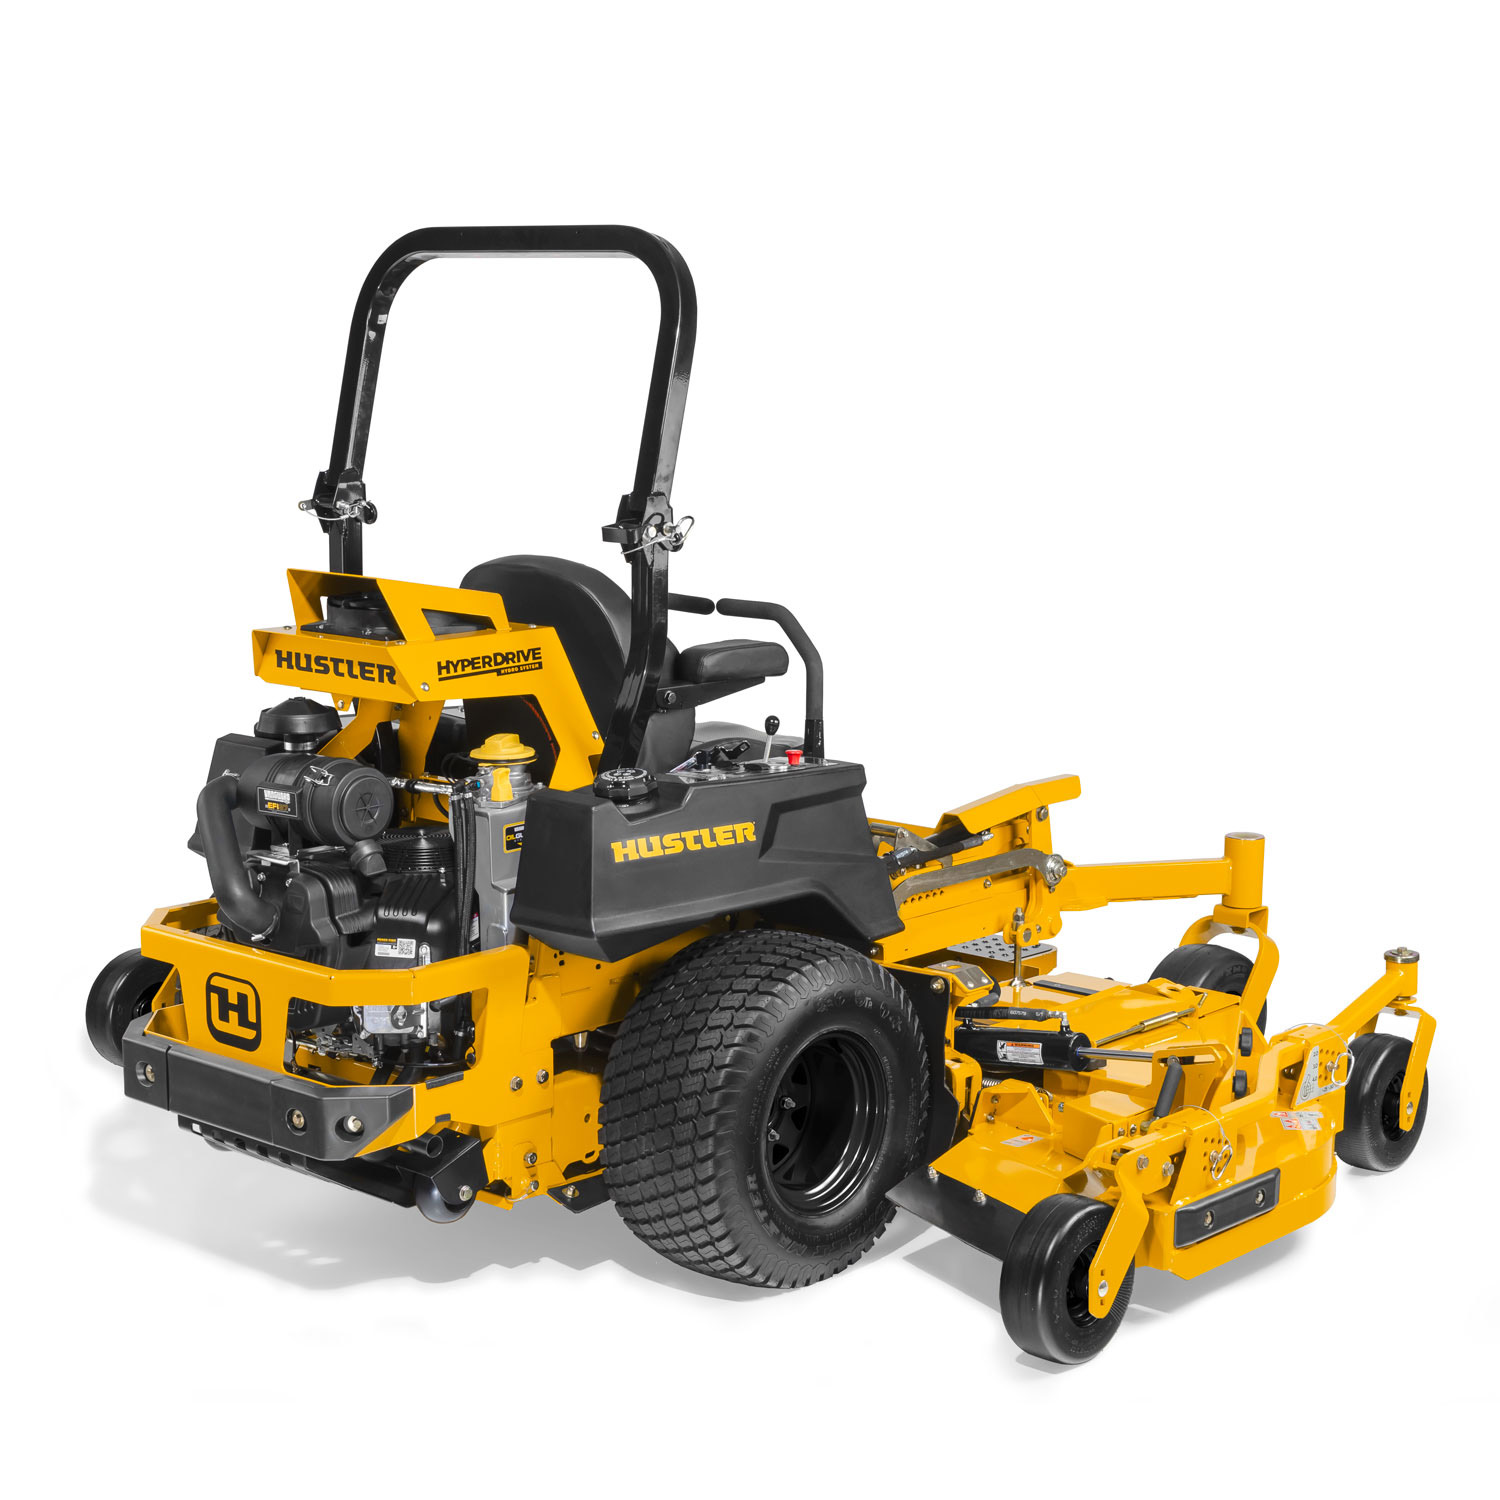 Image of the rear three quarters of a yellow wide area mid-mount mower